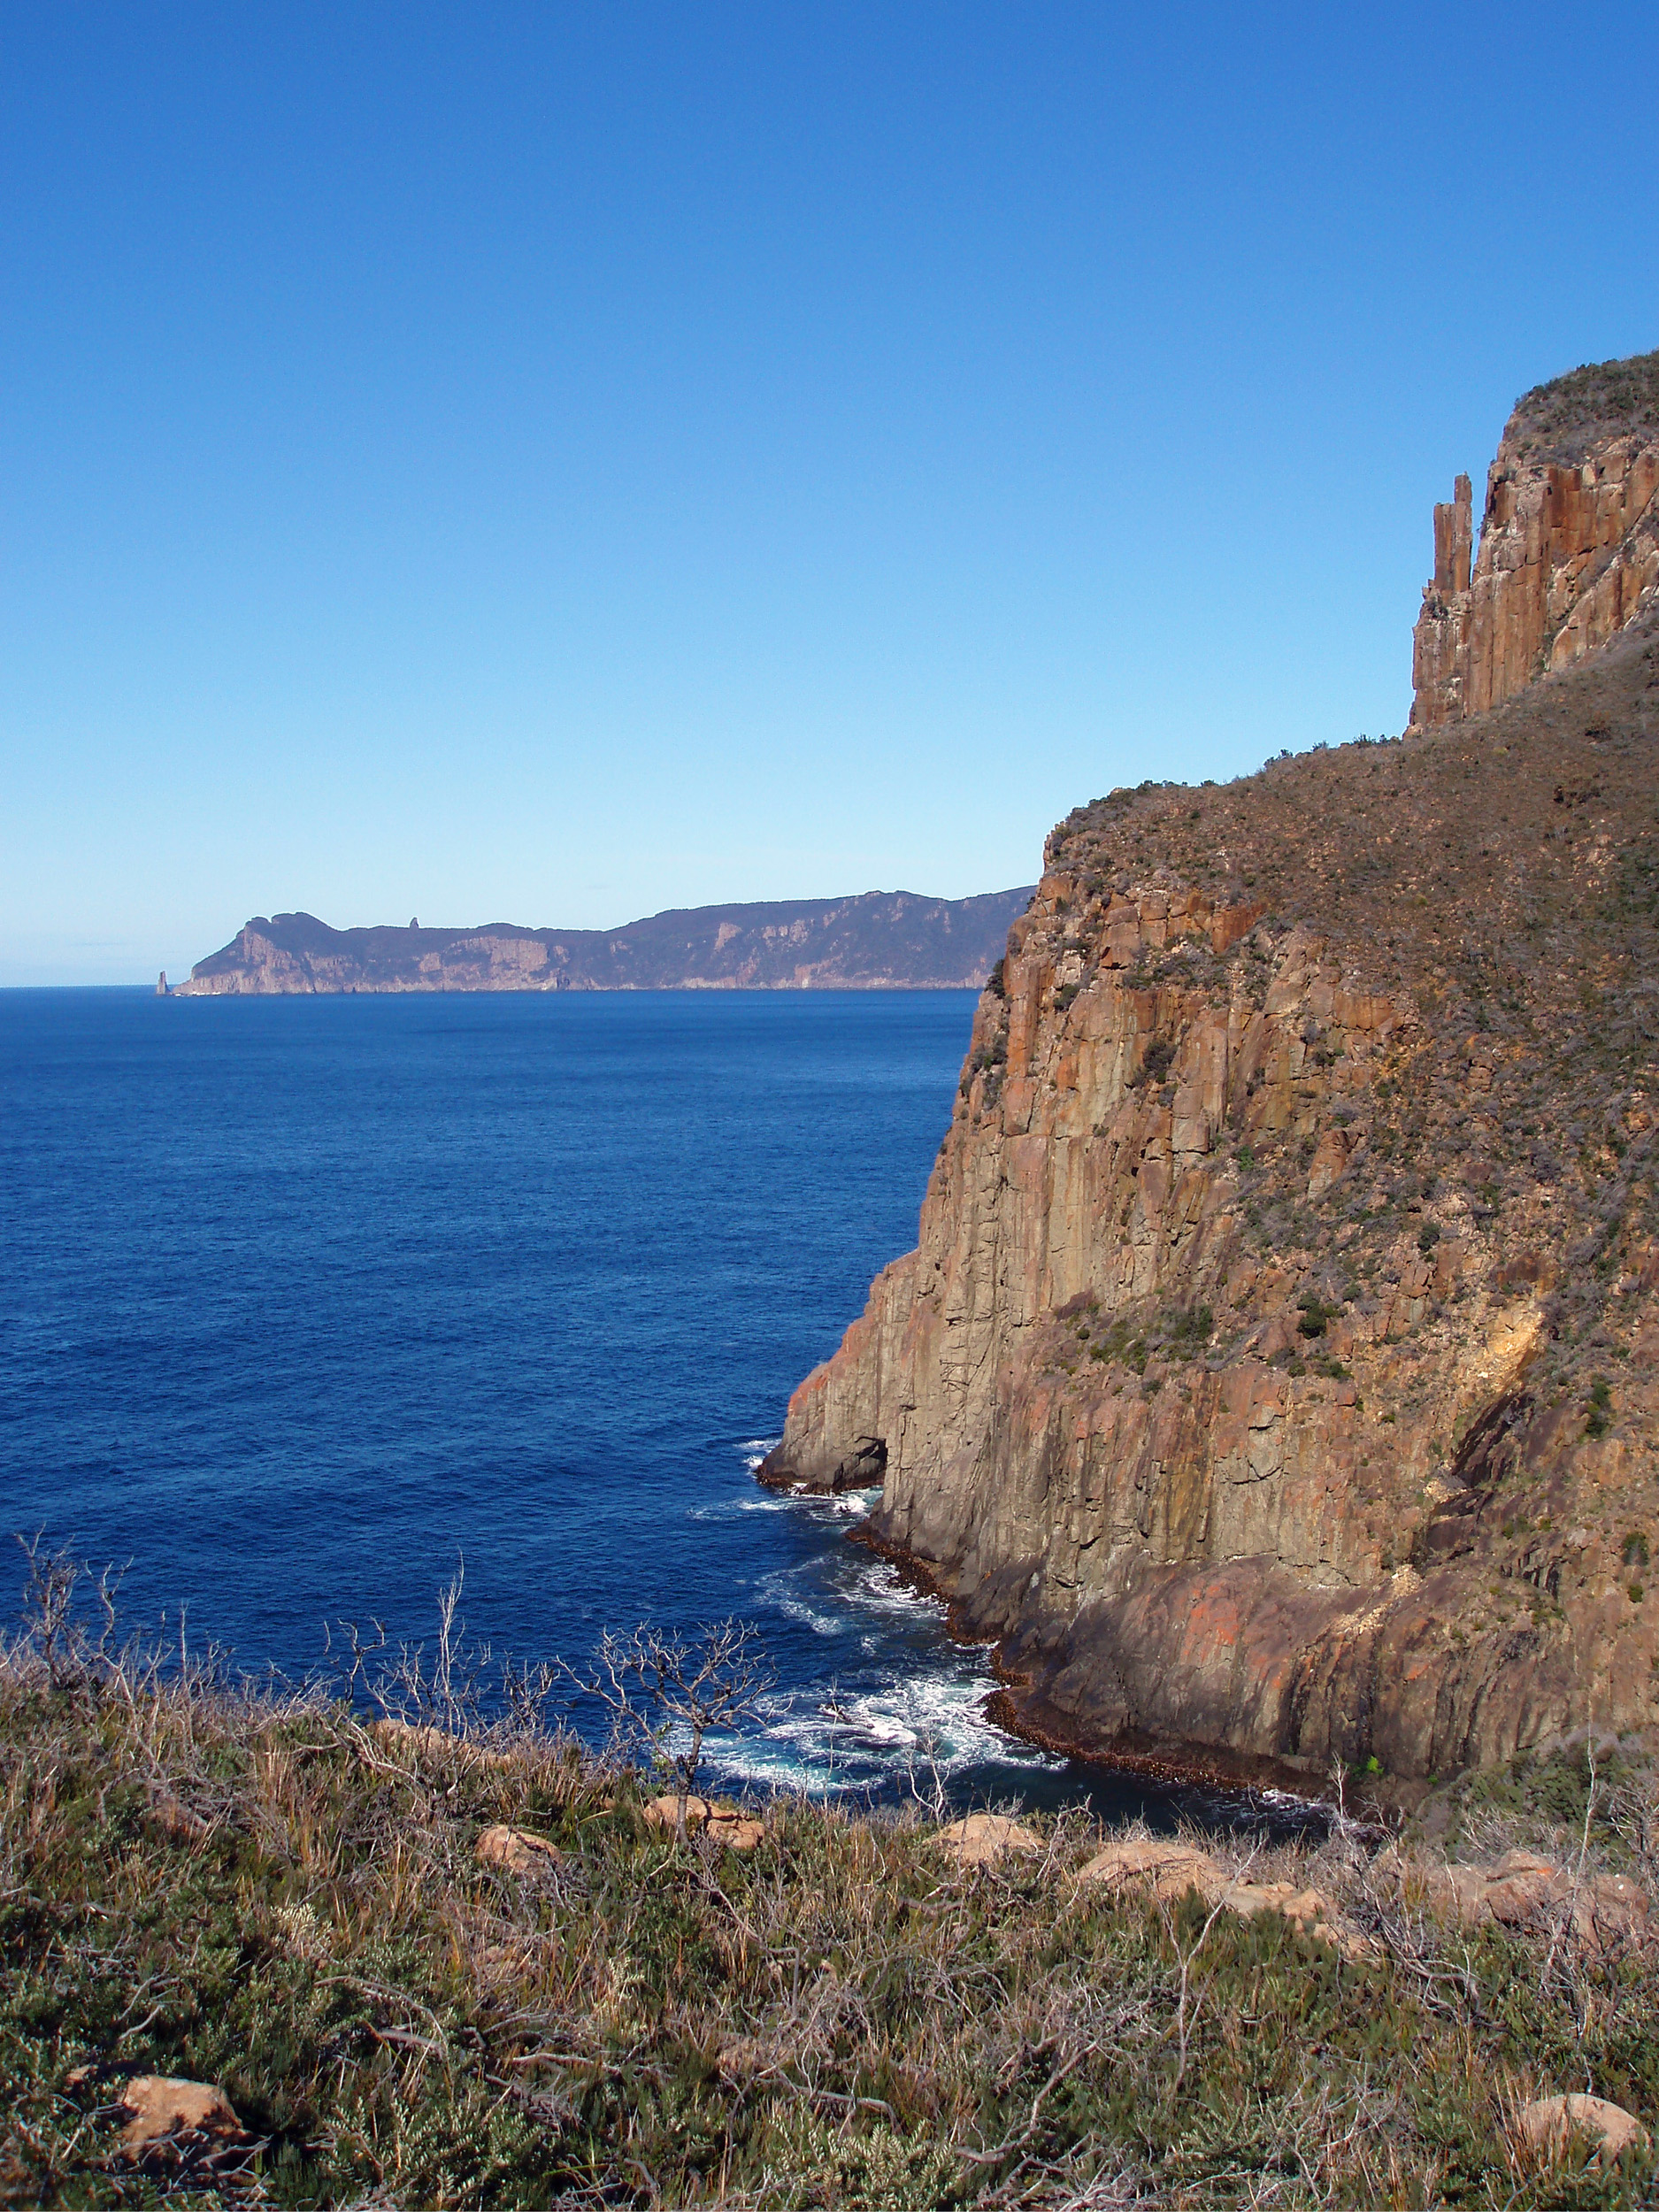 a view of Cape pillar across the water from Cape Hauy